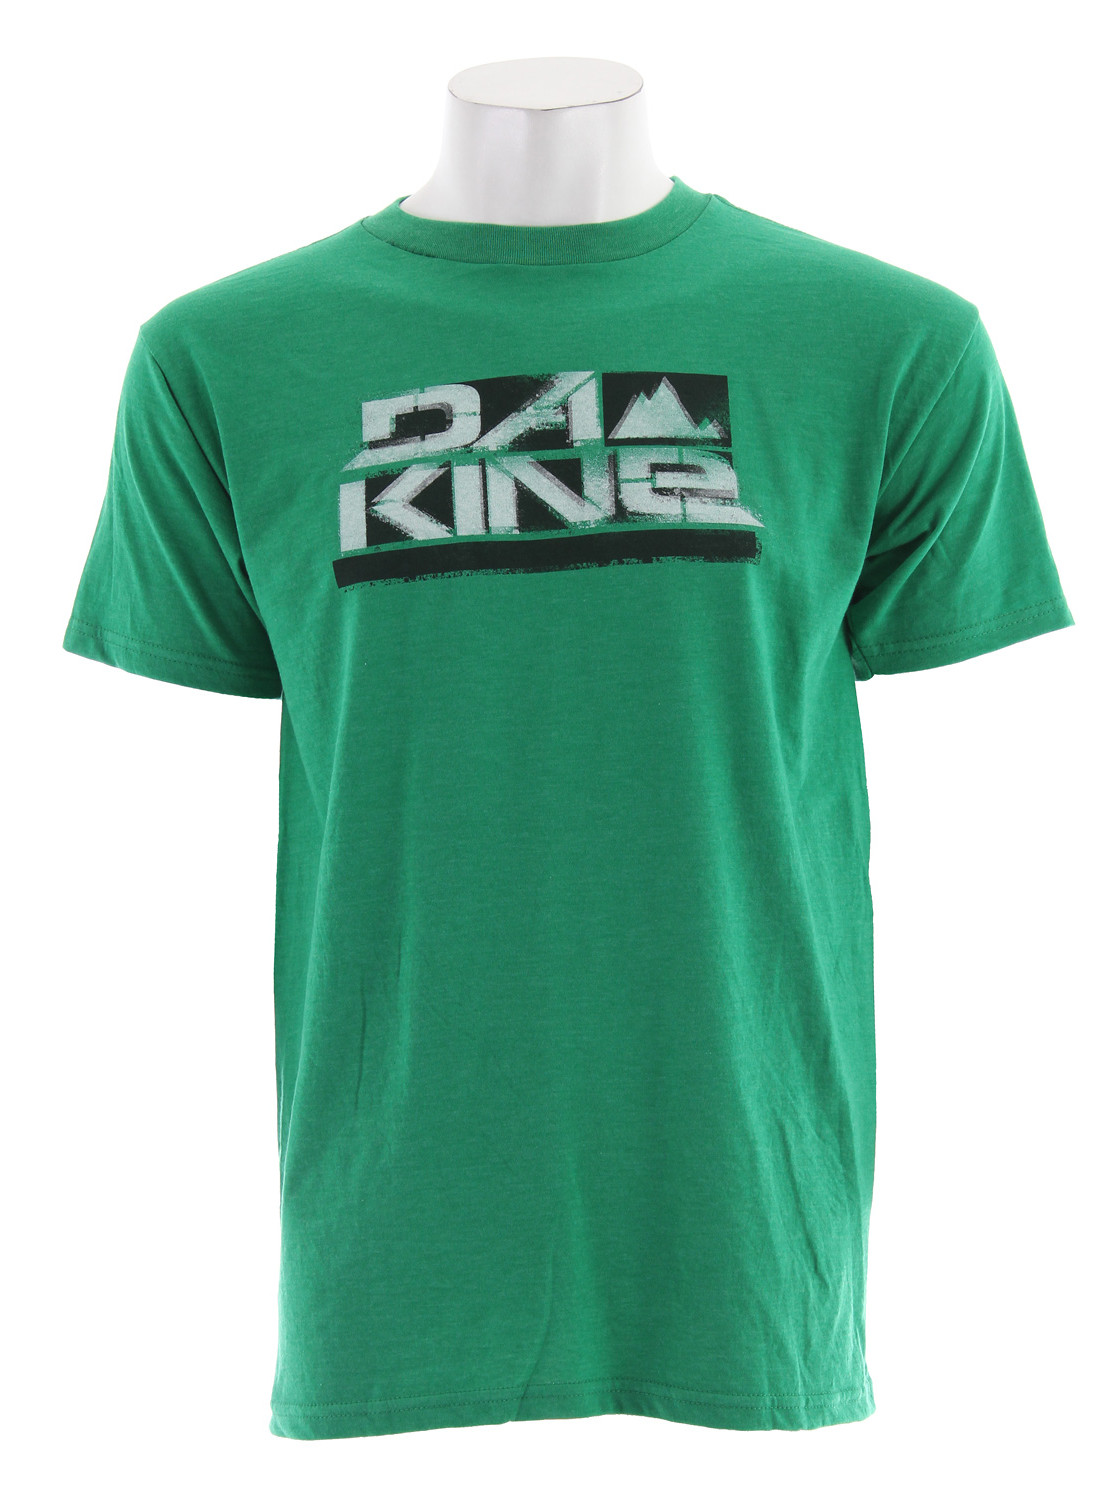 dakine-dither-tee-grn-heather-12.jpg